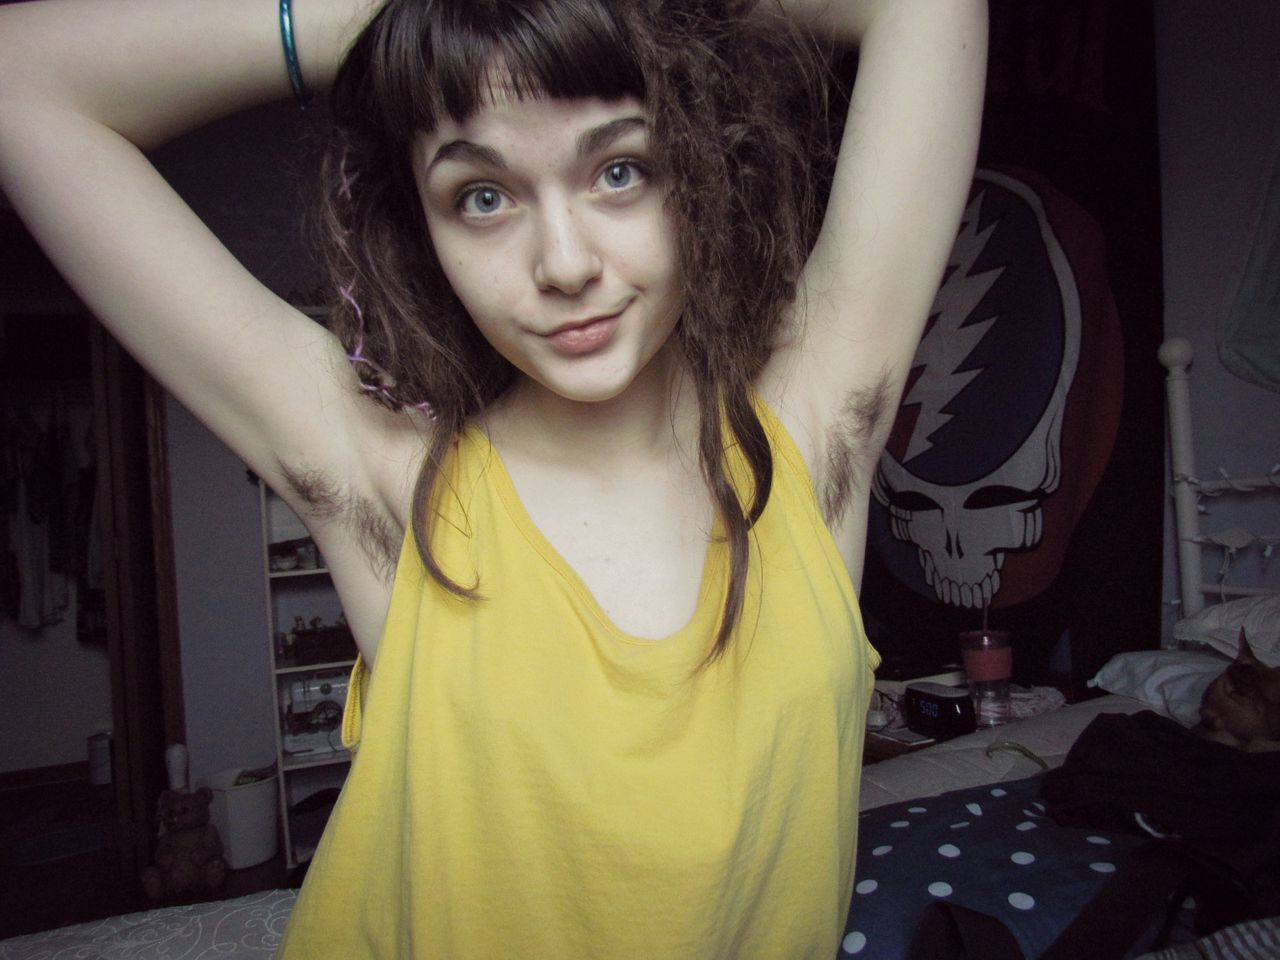 Hairy young girls photos